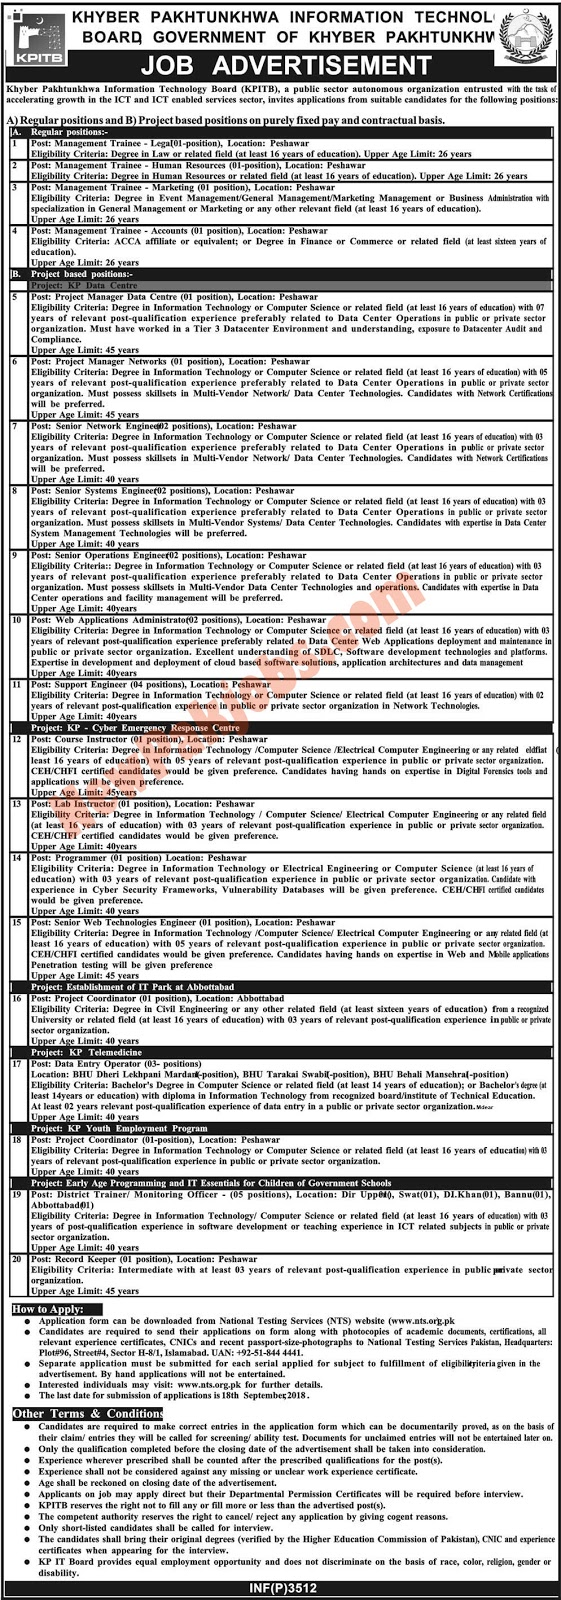 NTS Latest jobs in KPK  Information Technology Board 2018